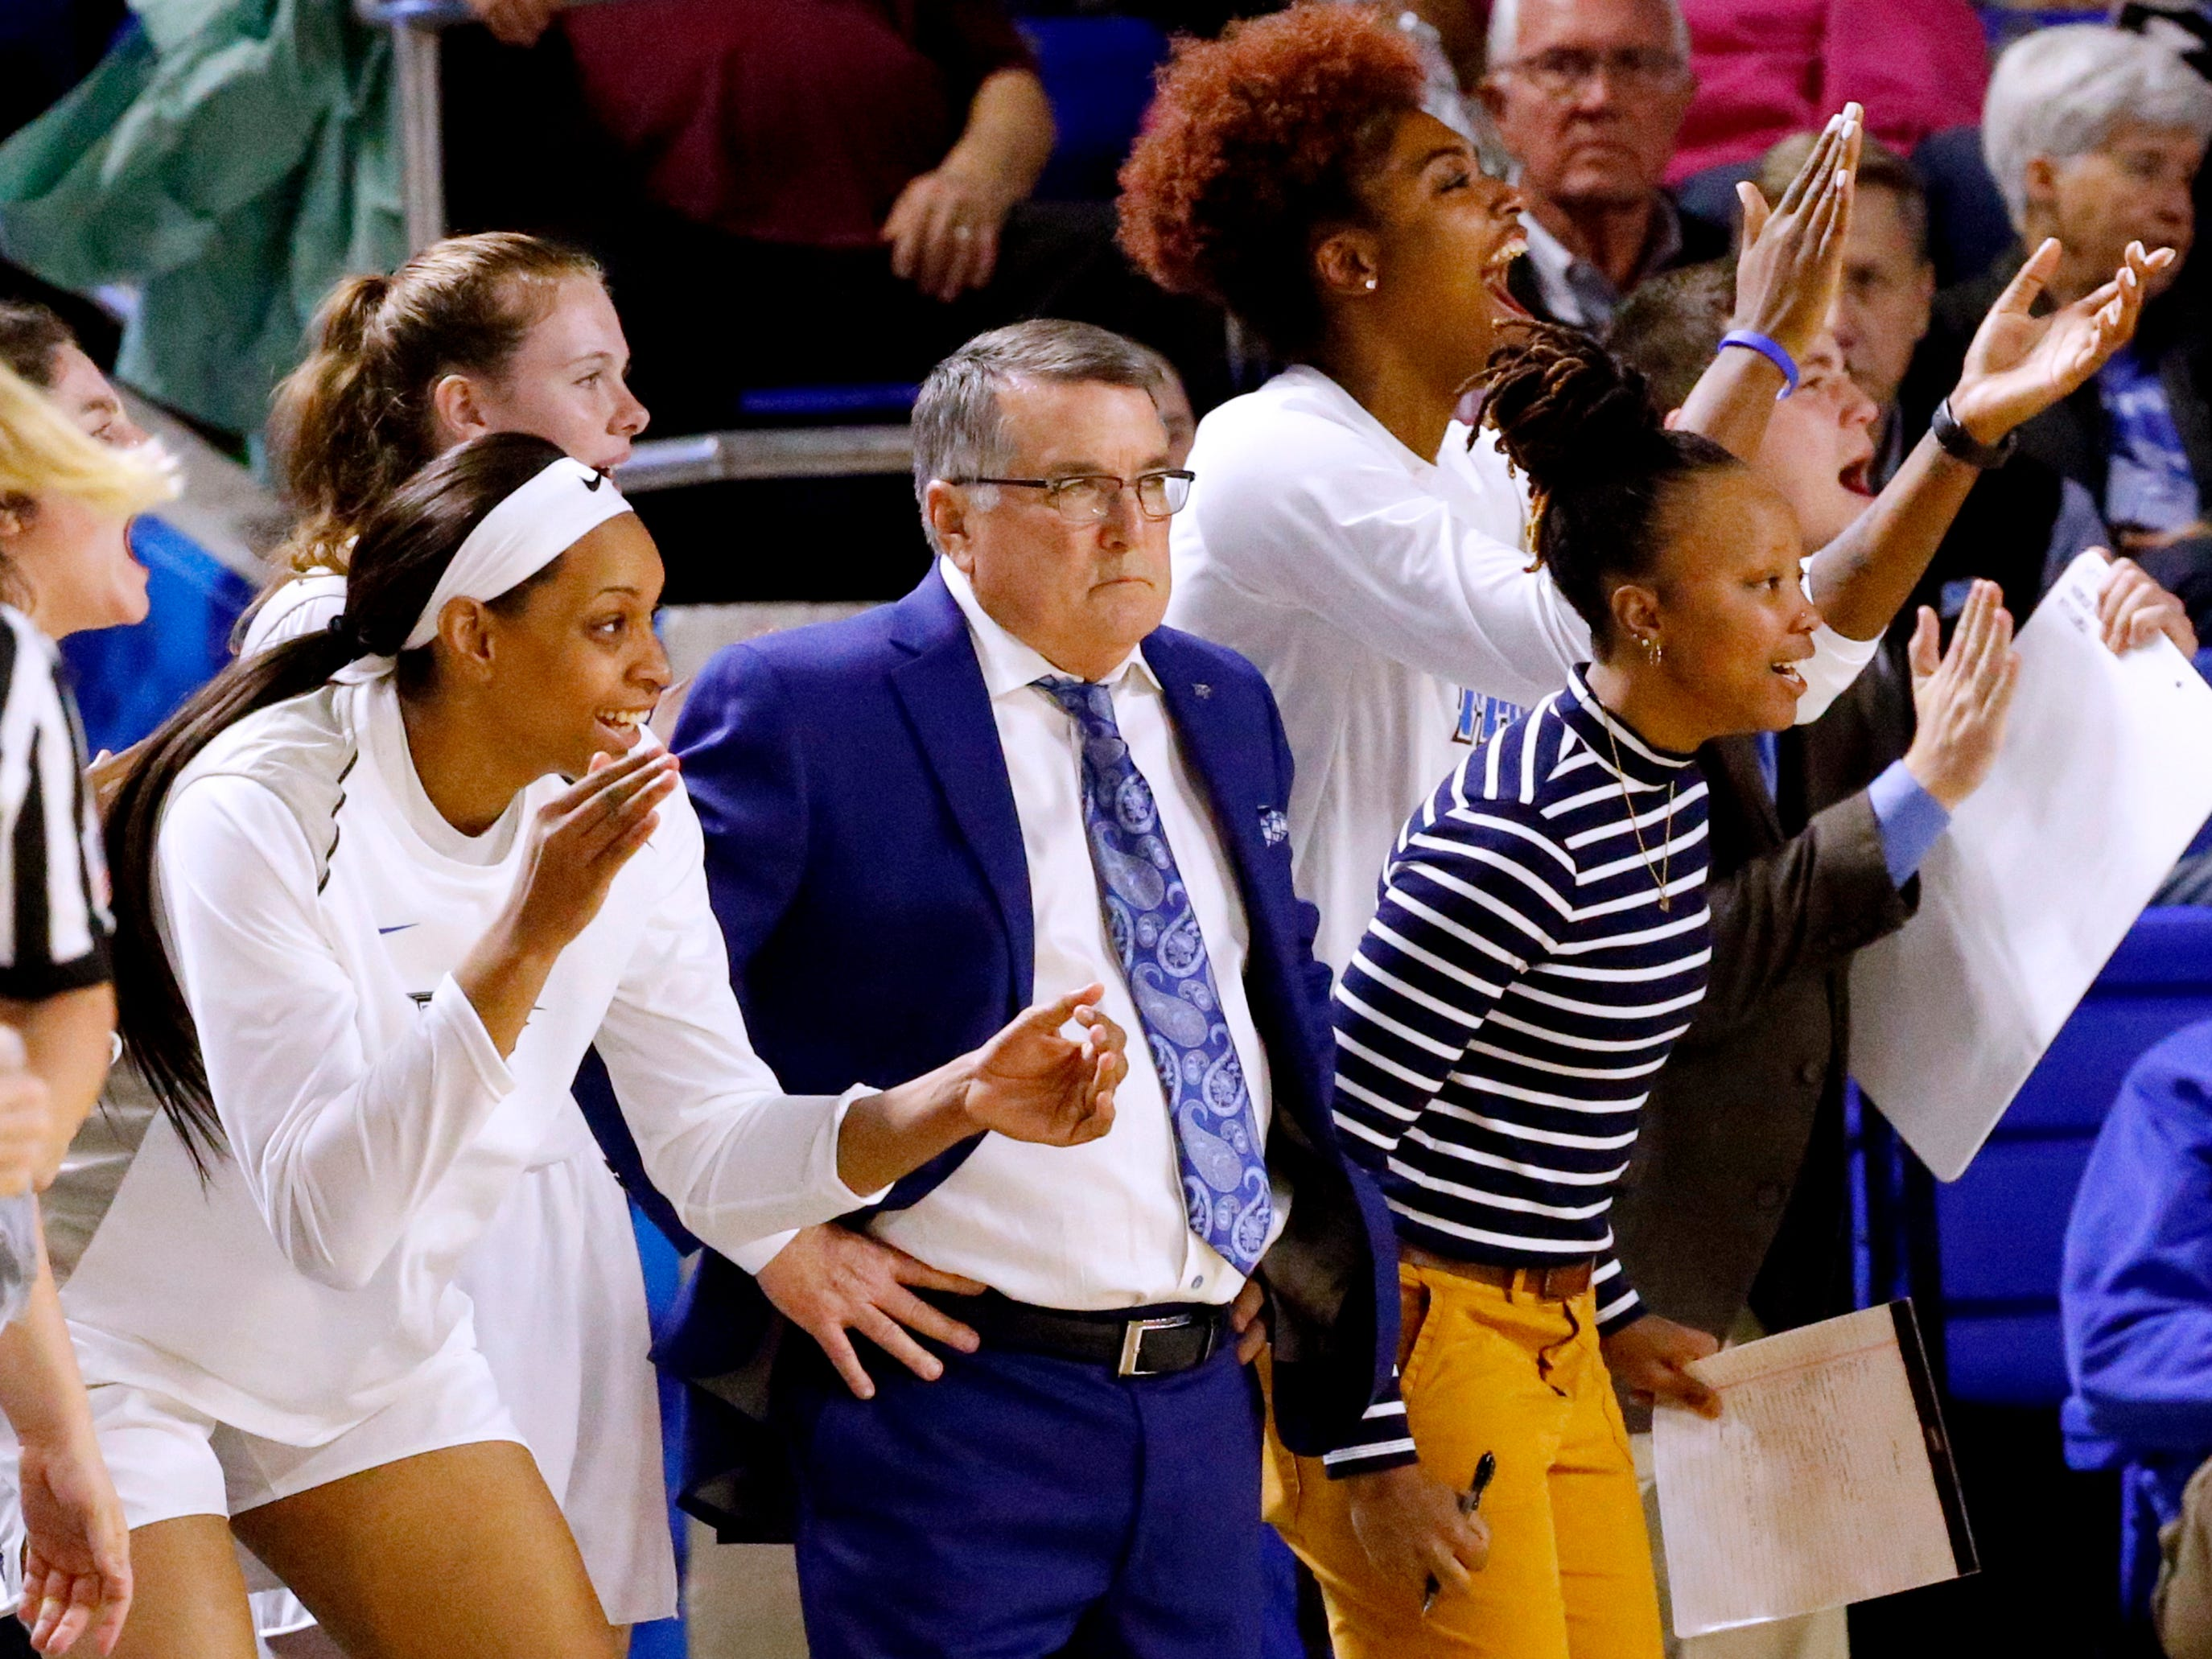 MTSU's head women's basketball coach Rick Insell watches the game from the sidelines as the bench cheers on MTSU against Vanderbilt during MTSU women's home opening game at MTSU on Friday, Nov. 8, 2018.